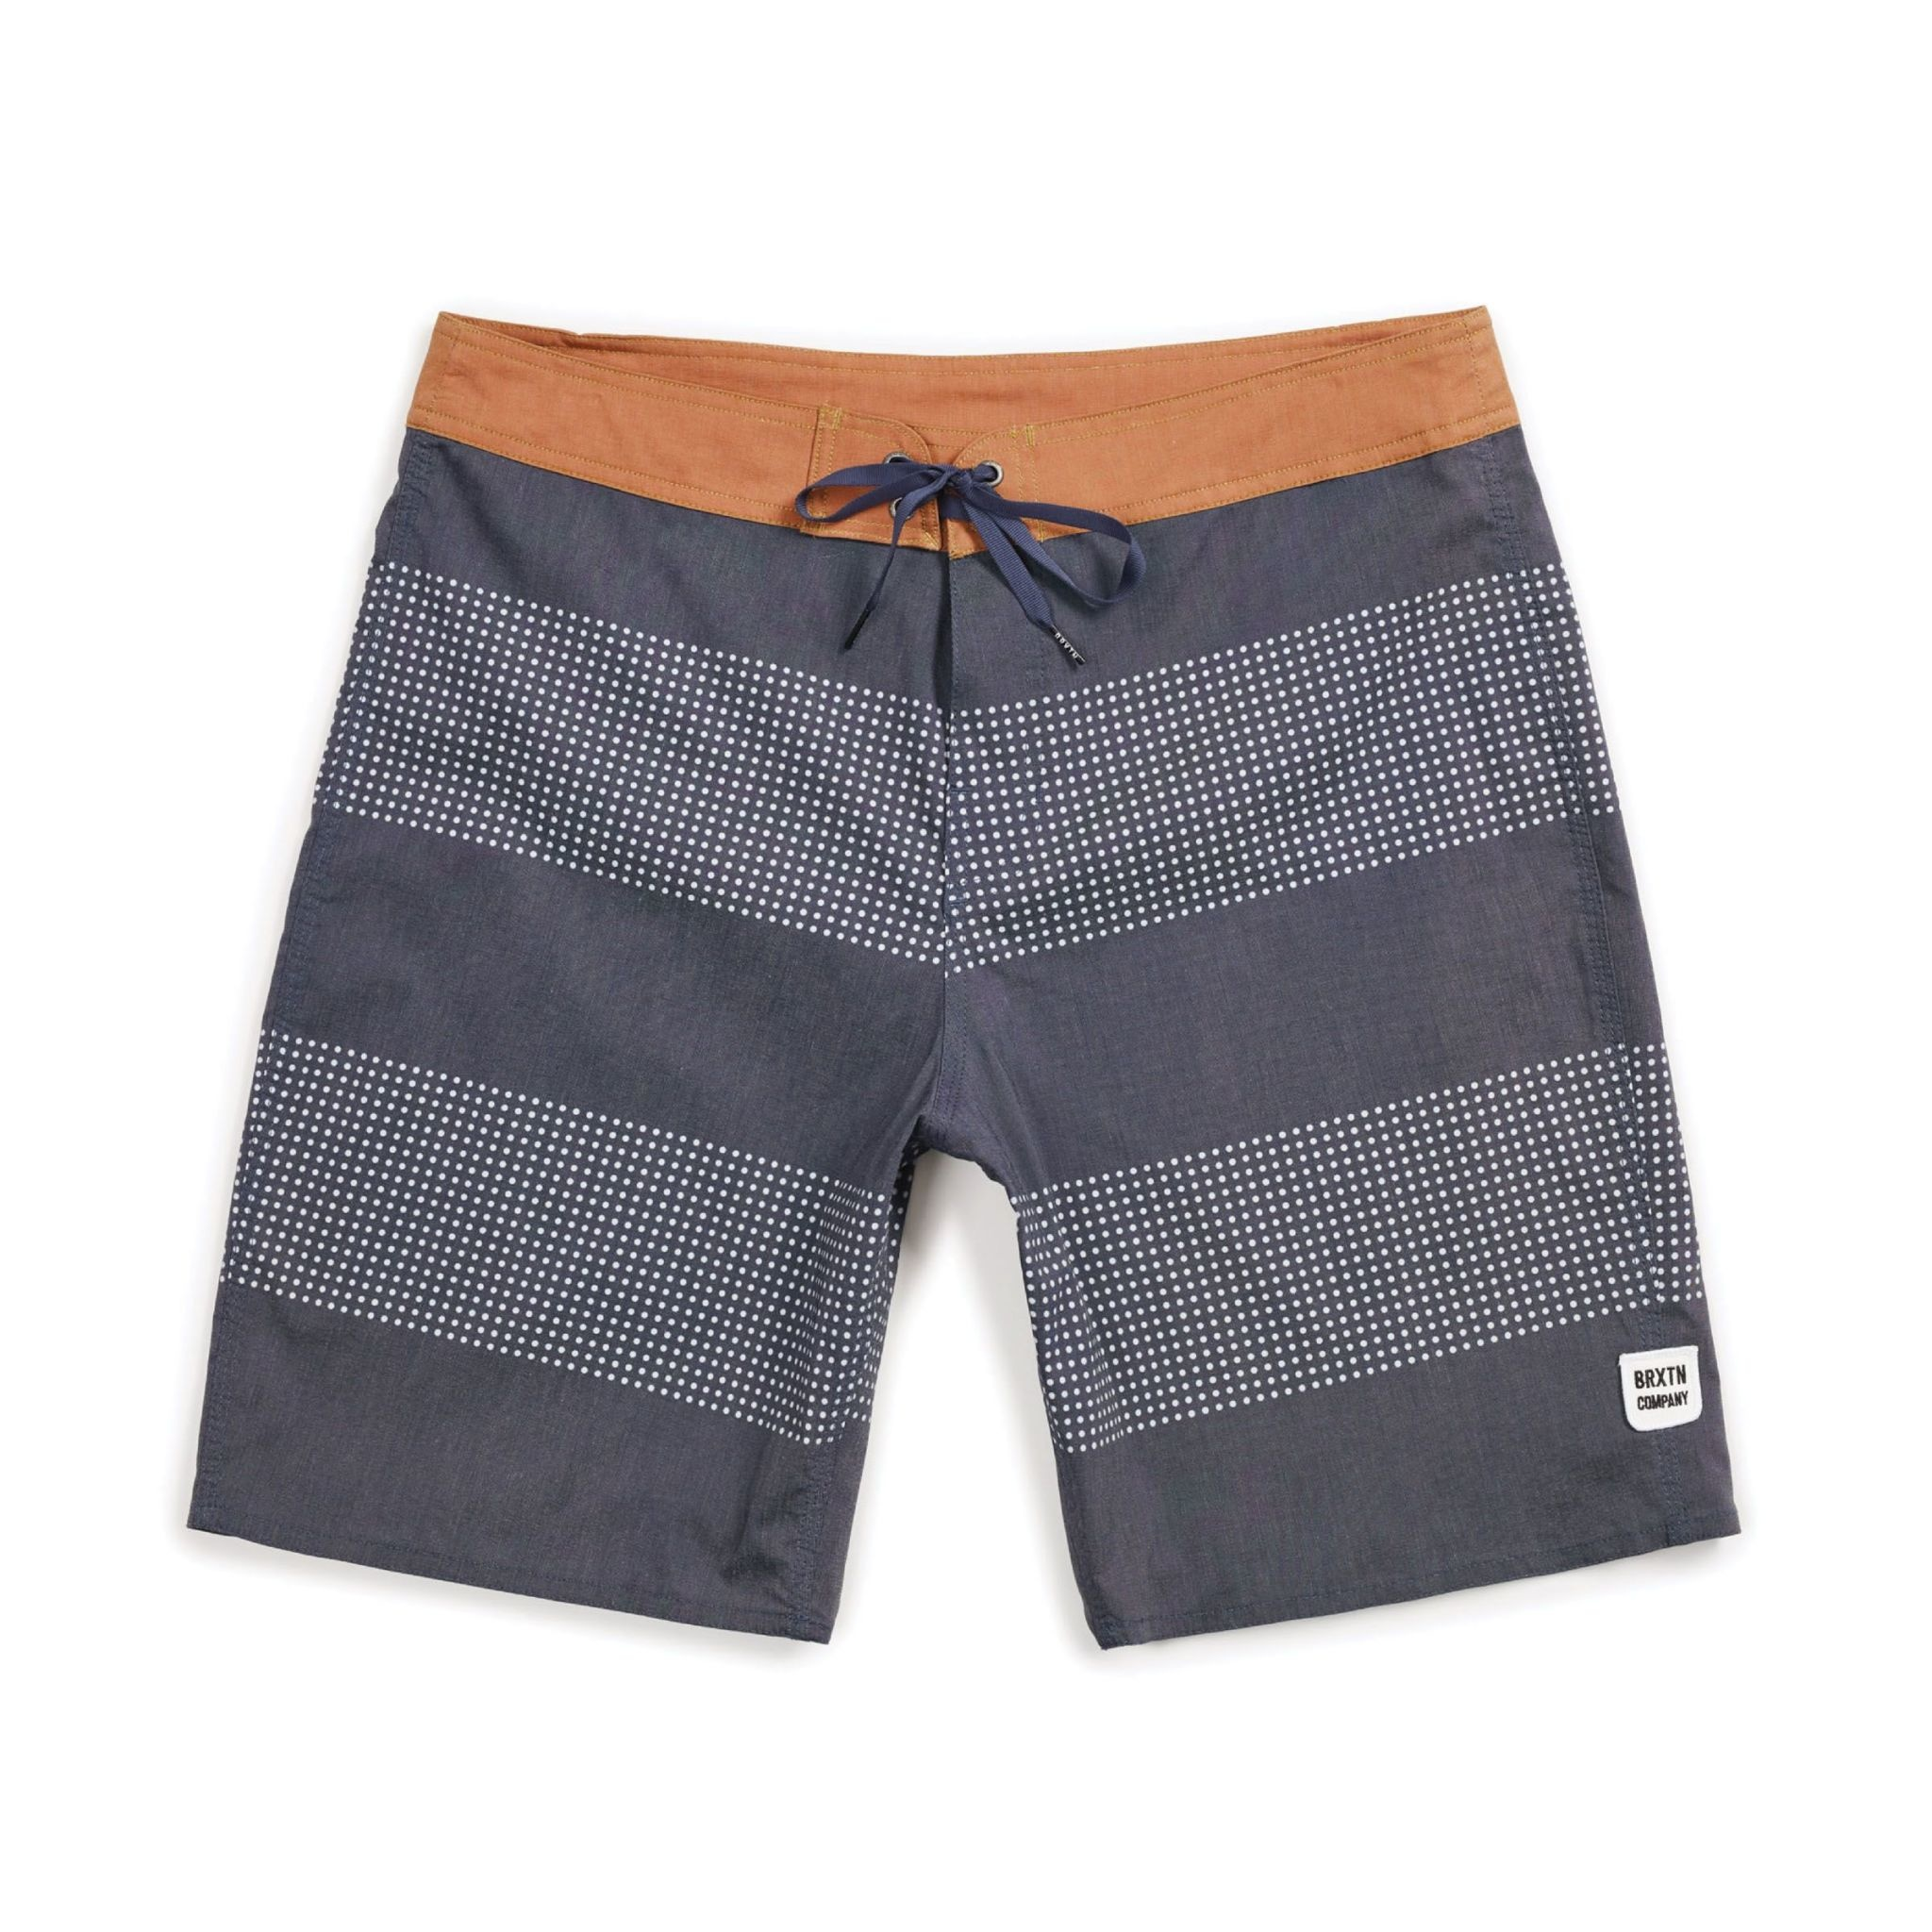 BRIXTON BARGE STRIPE TRUNK